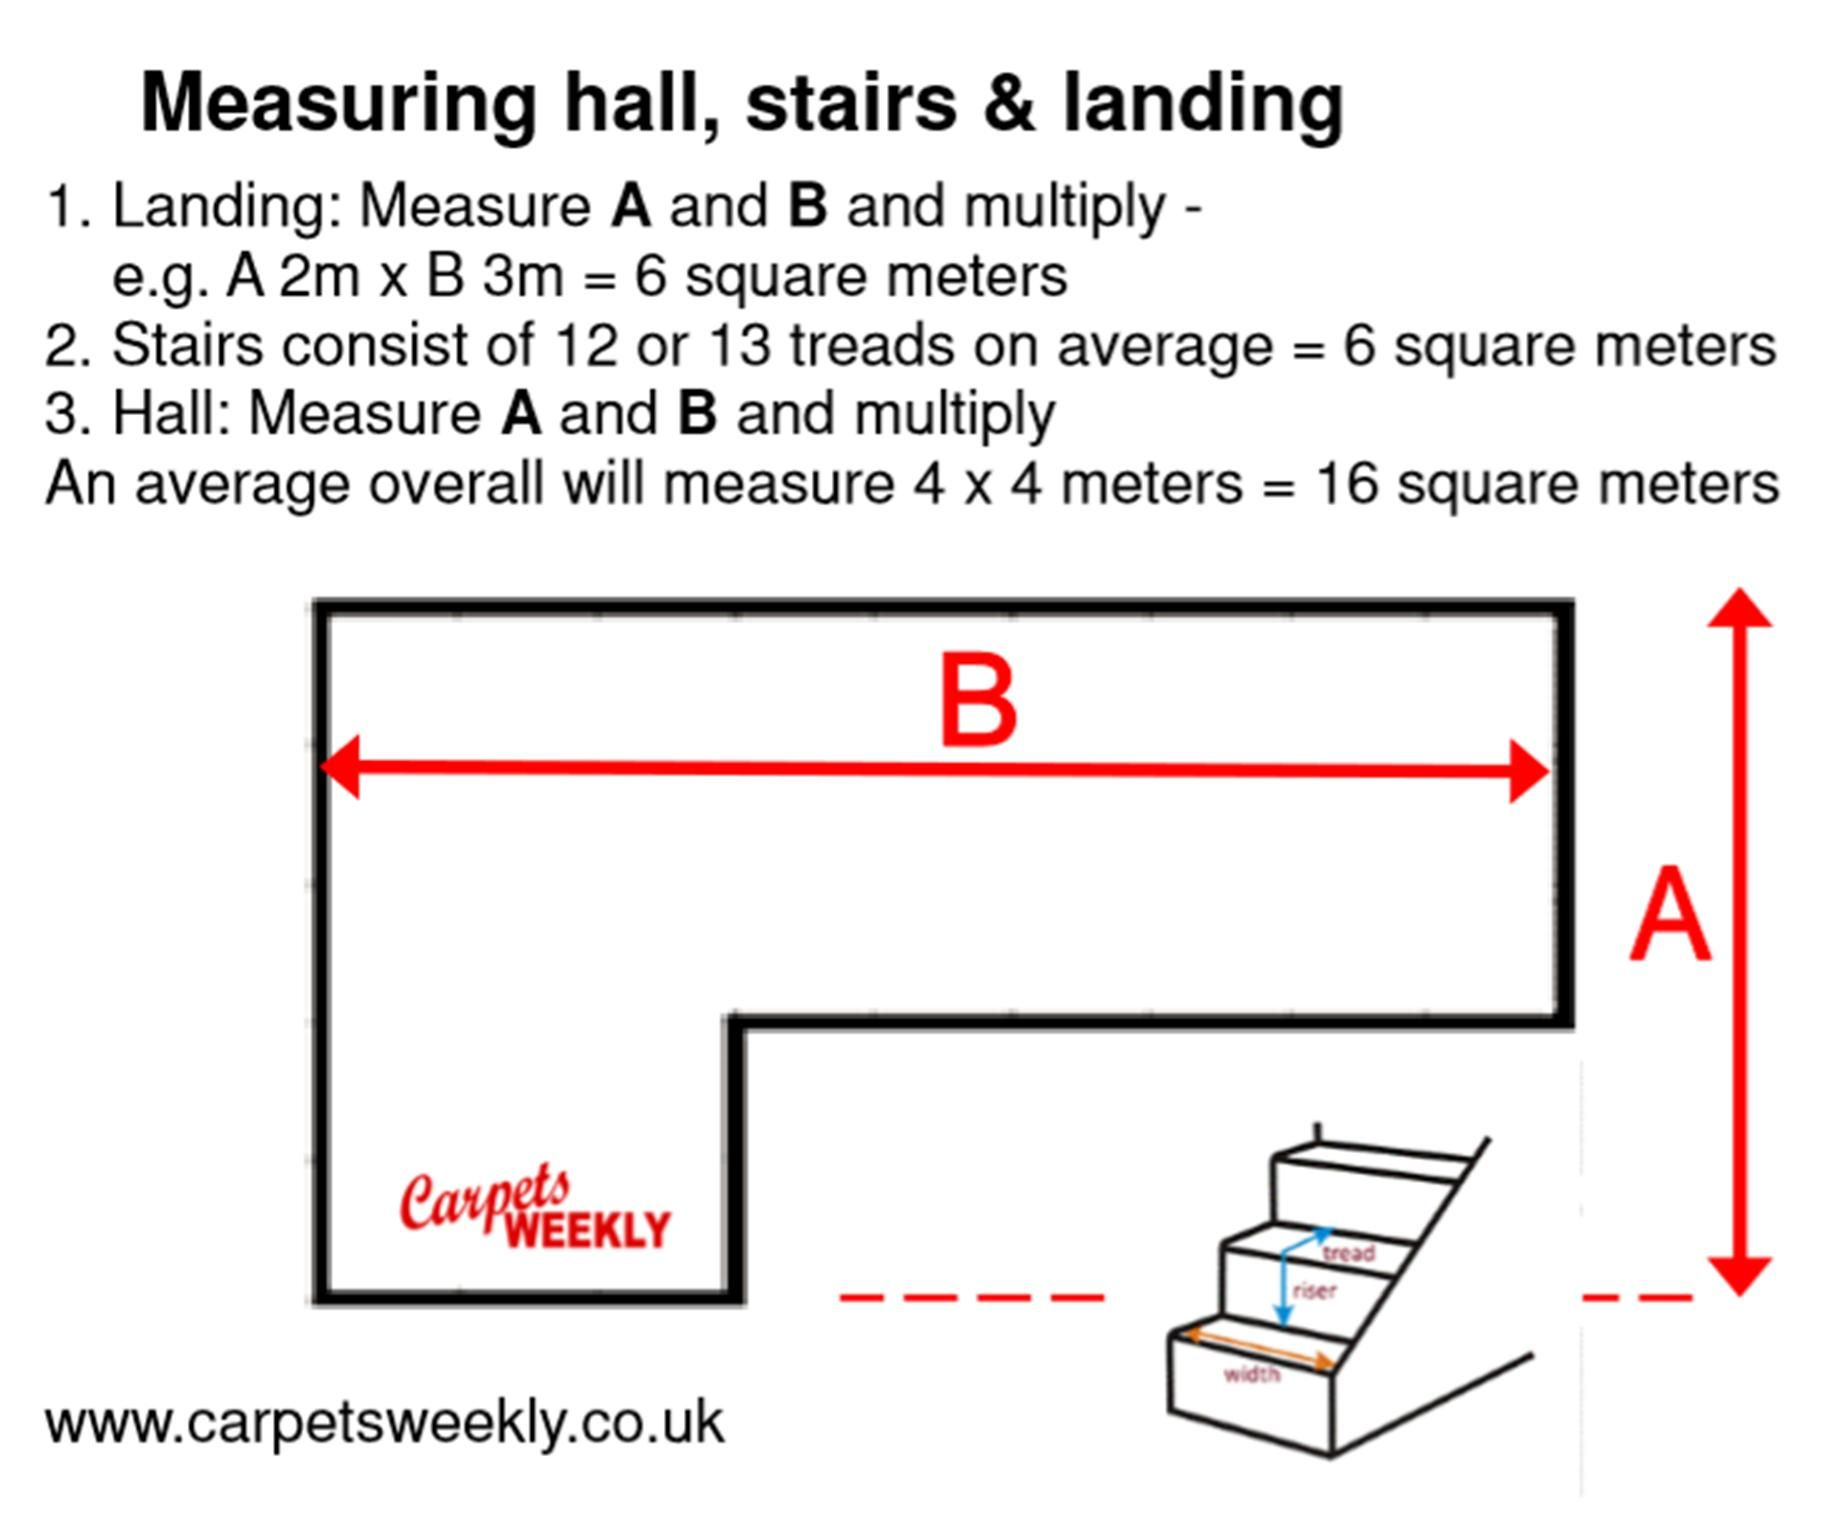 Measuring Hall, stairs and landing for carpet. Carpets Weekly